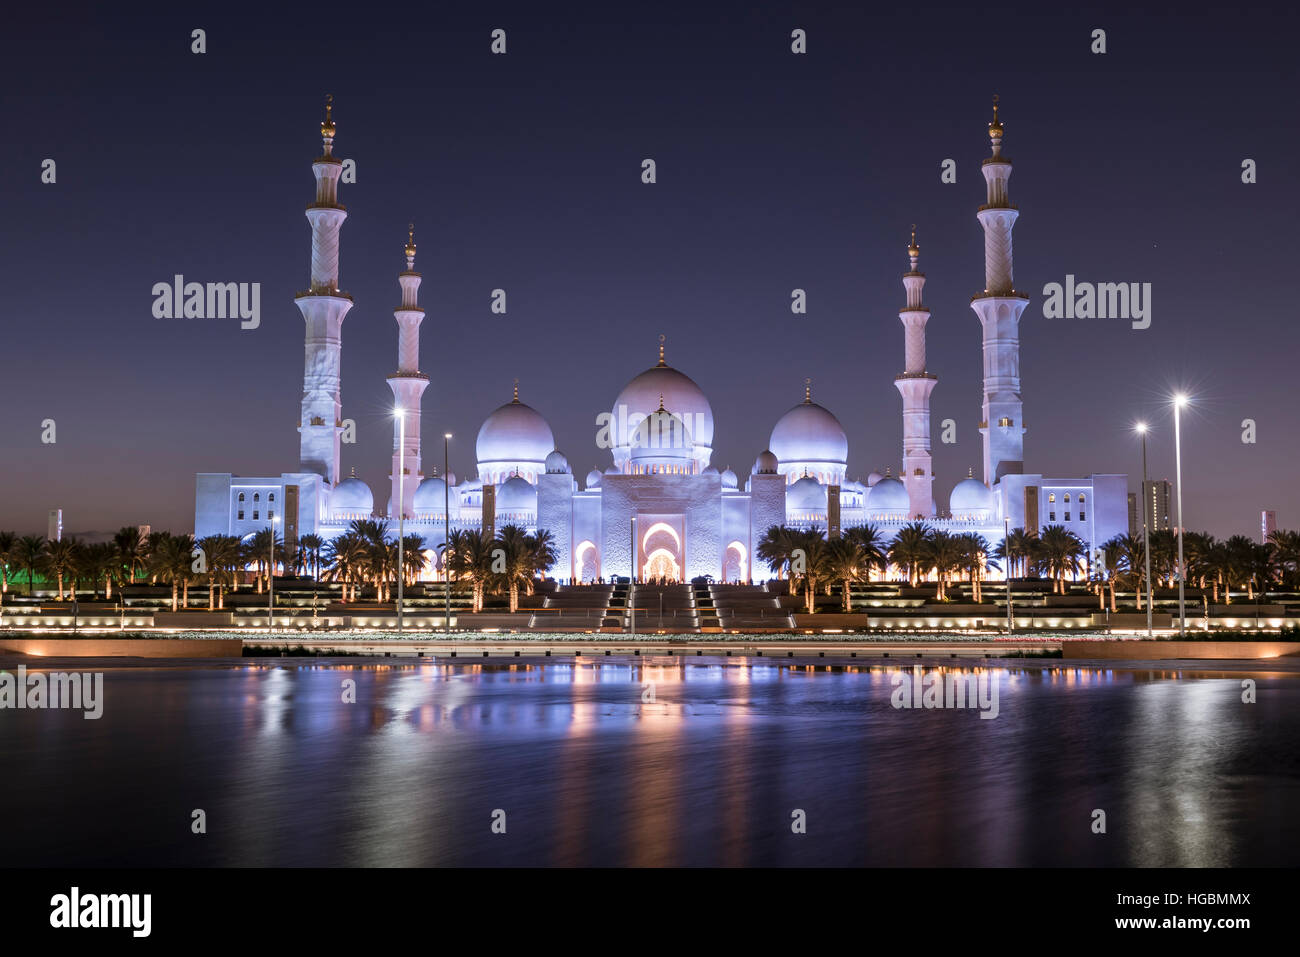 Sunset over the Sheikh Zayed Grand Mosque in Abu Dhabi, United Arab Emirates.  Mosque is built of white marble and - Stock Image